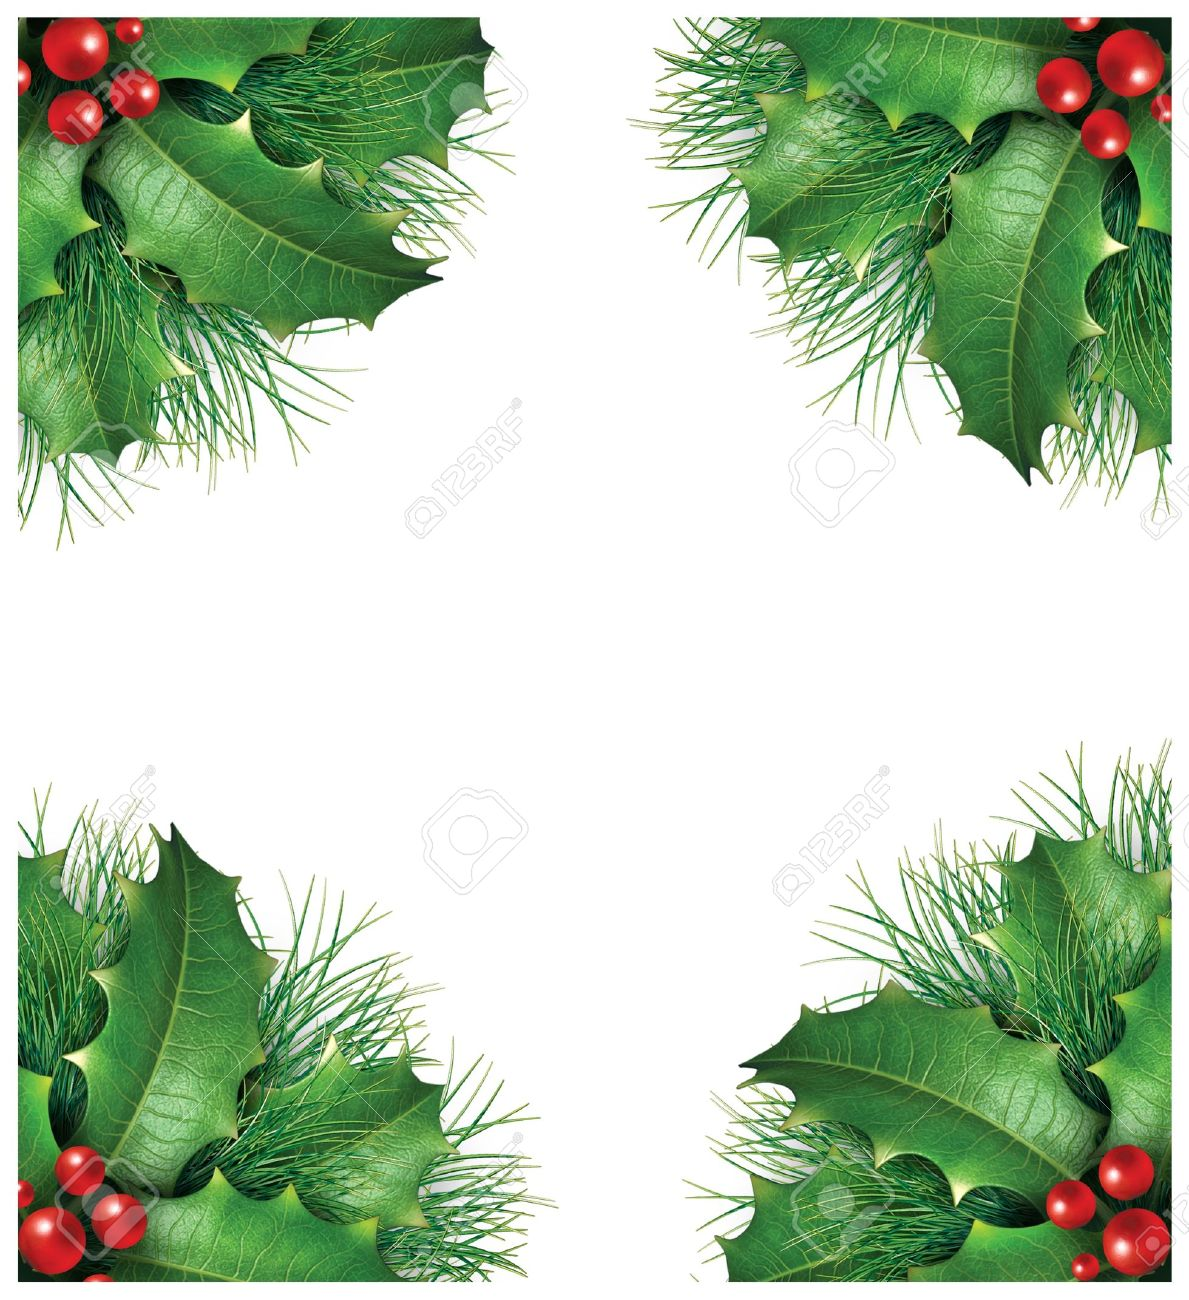 Pine Branches For Decoration Holly With Pine Branches And Red Berries For A Seasona Christmas